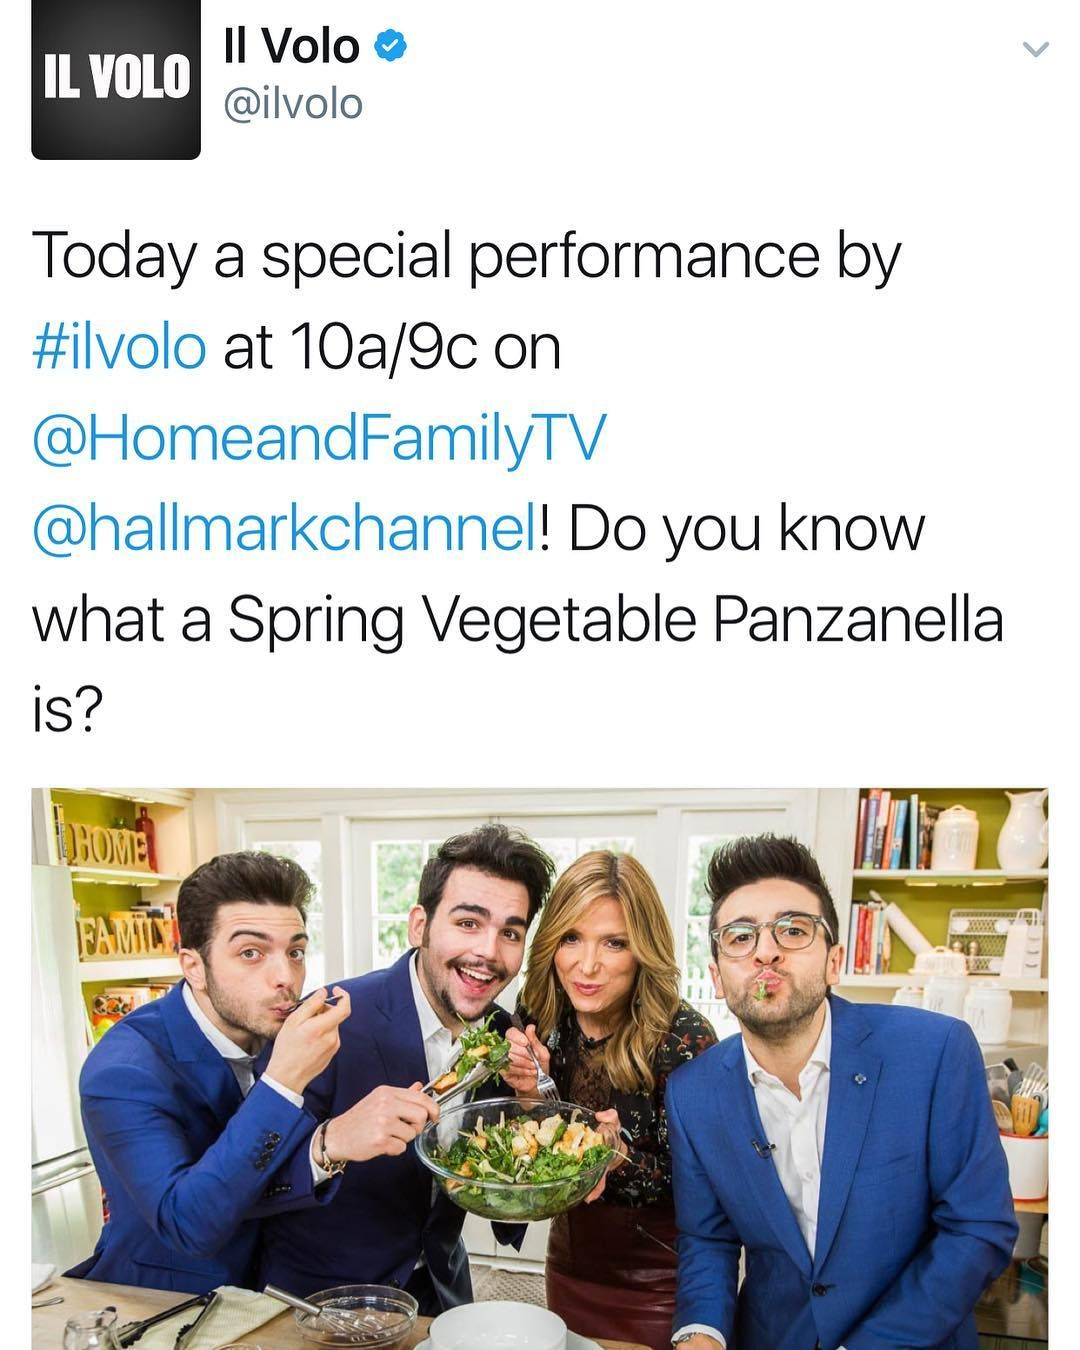 """206 Likes, 1 Comments - Il Volo Mundial Oficial (@ilvolomundialoficial) on Instagram: """"Tweeted by @ilvolomusic @hallmarkchannel @homeandfamilytv #ilvolo"""""""